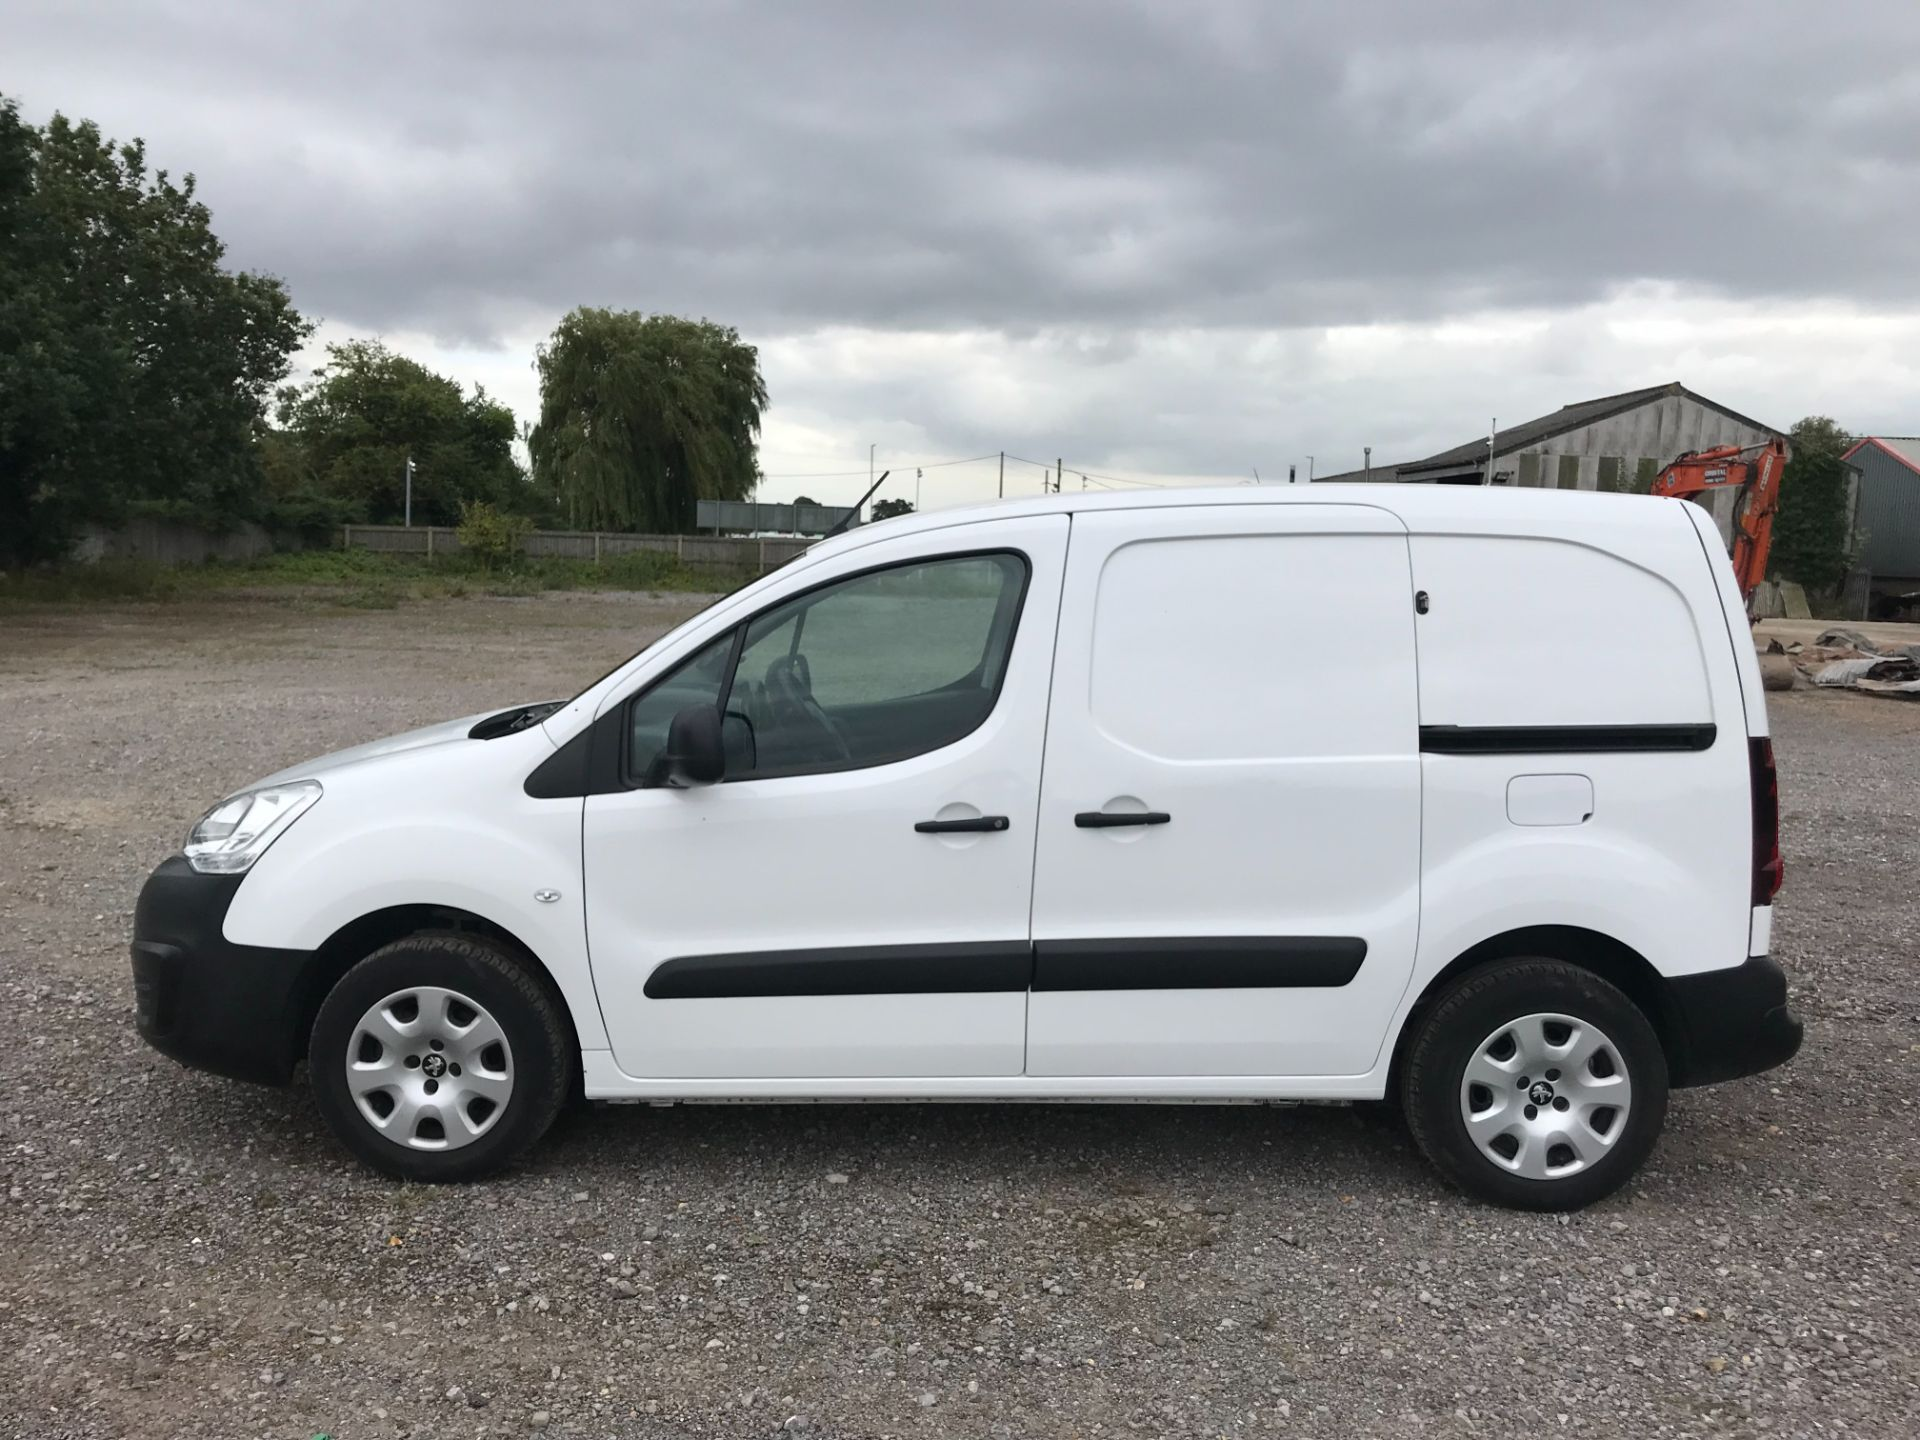 2017 Peugeot Partner L1 850 1.6 BLUEHDI 100 PROFESSIONAL (NON S/S)EURO 6 *Limited to 70MPH* (NV17SYO) Image 8